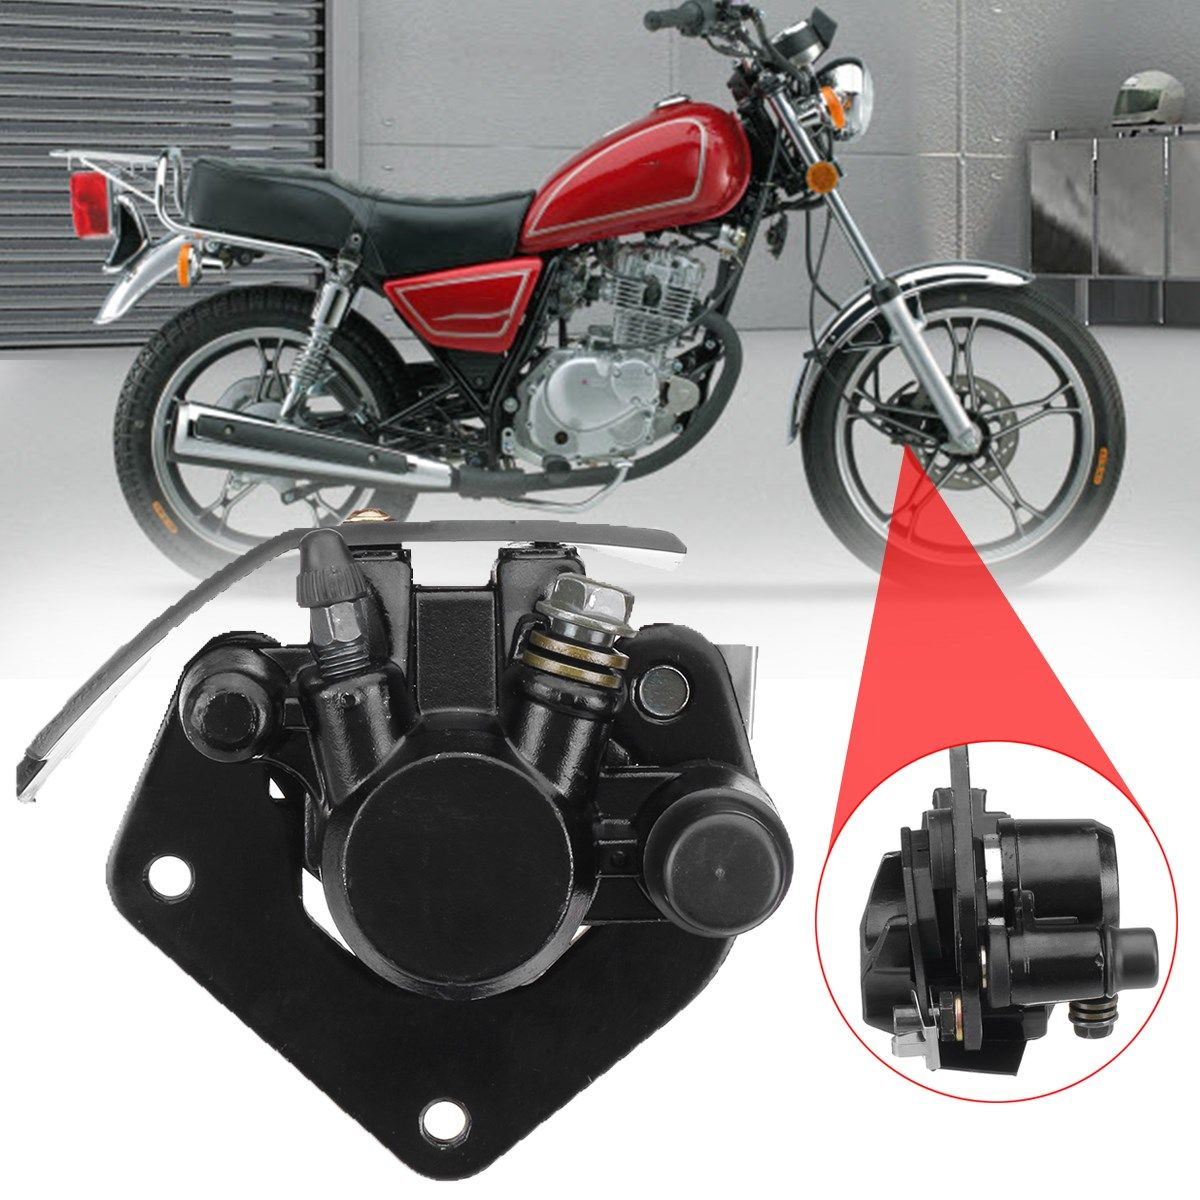 For Suzuki GN125 GS125 Front Brake Caliper Black + Brake Pads Motorcycle Accessories Parts High Quality